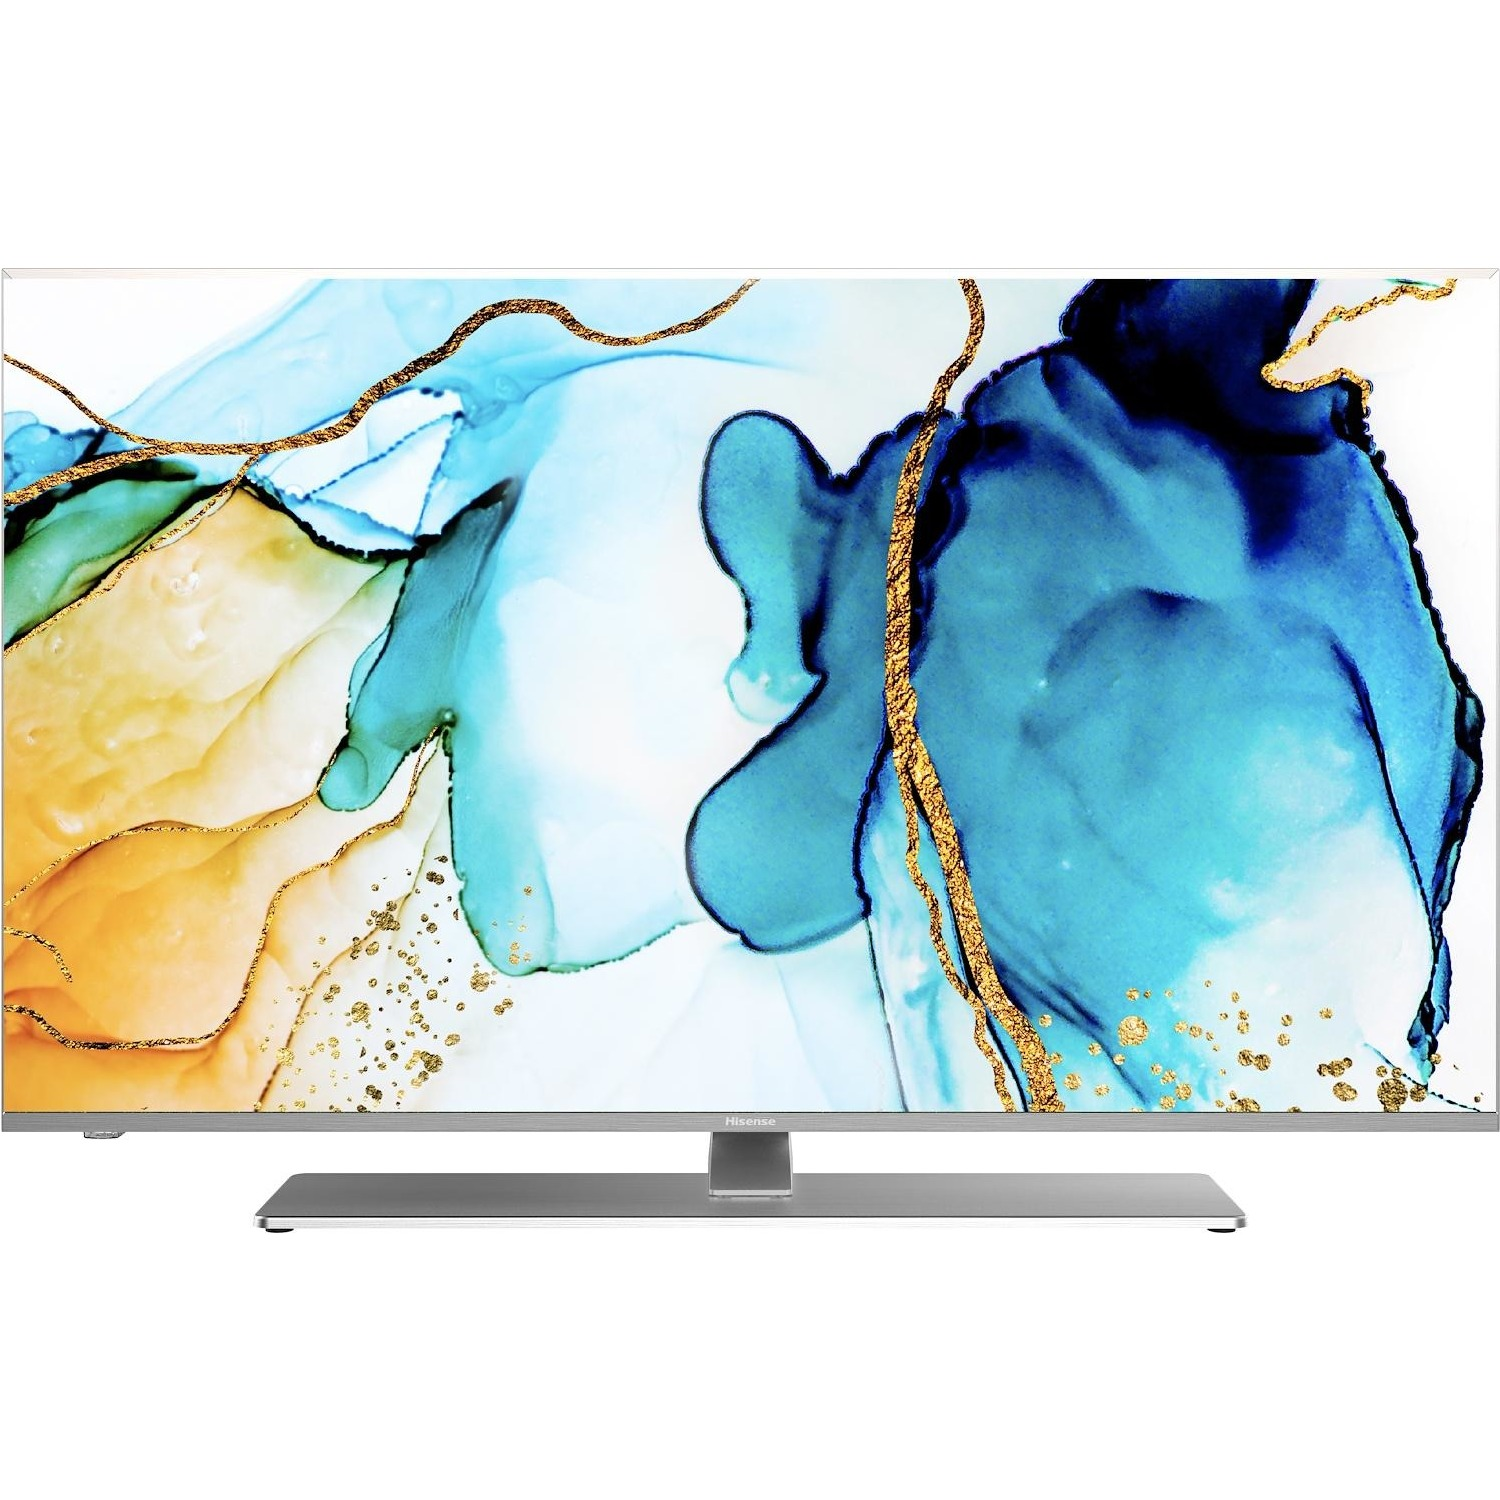 Immagine per TV LED Smart 4K UHD Hisense 55A6570 da DIMOStore